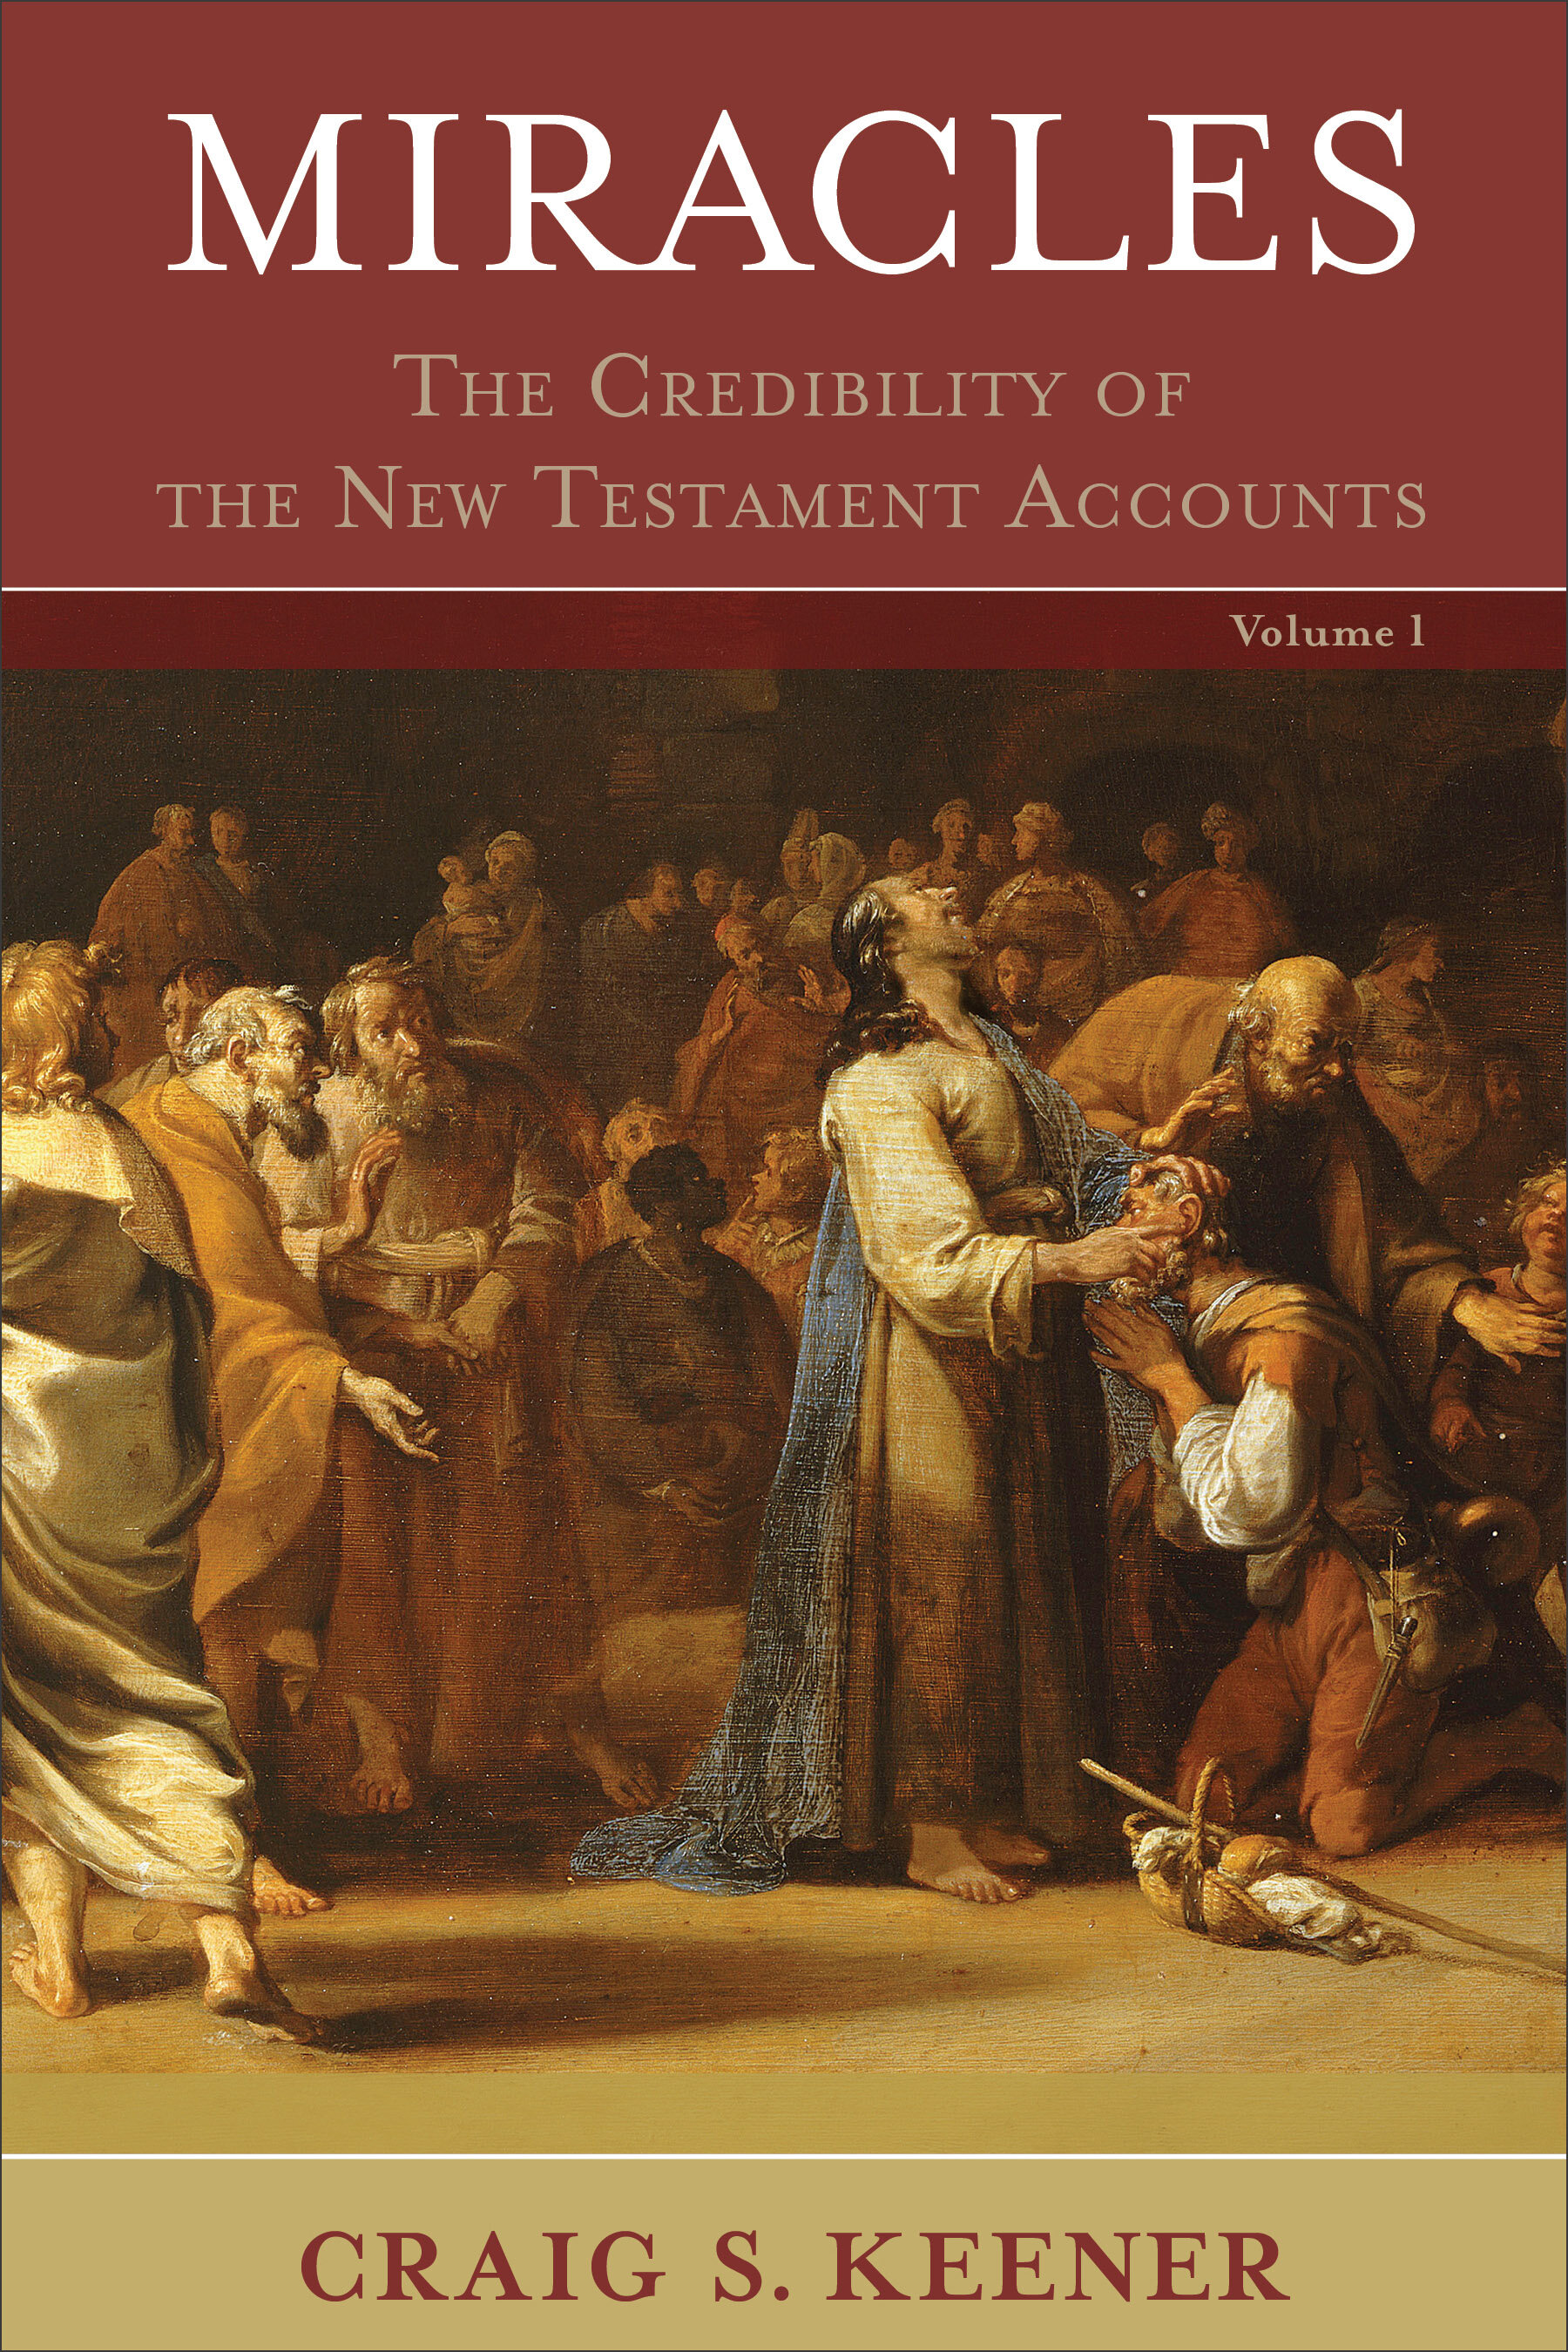 Miracles: The Credibility of the New Testament Accounts, Volume 1 & 2